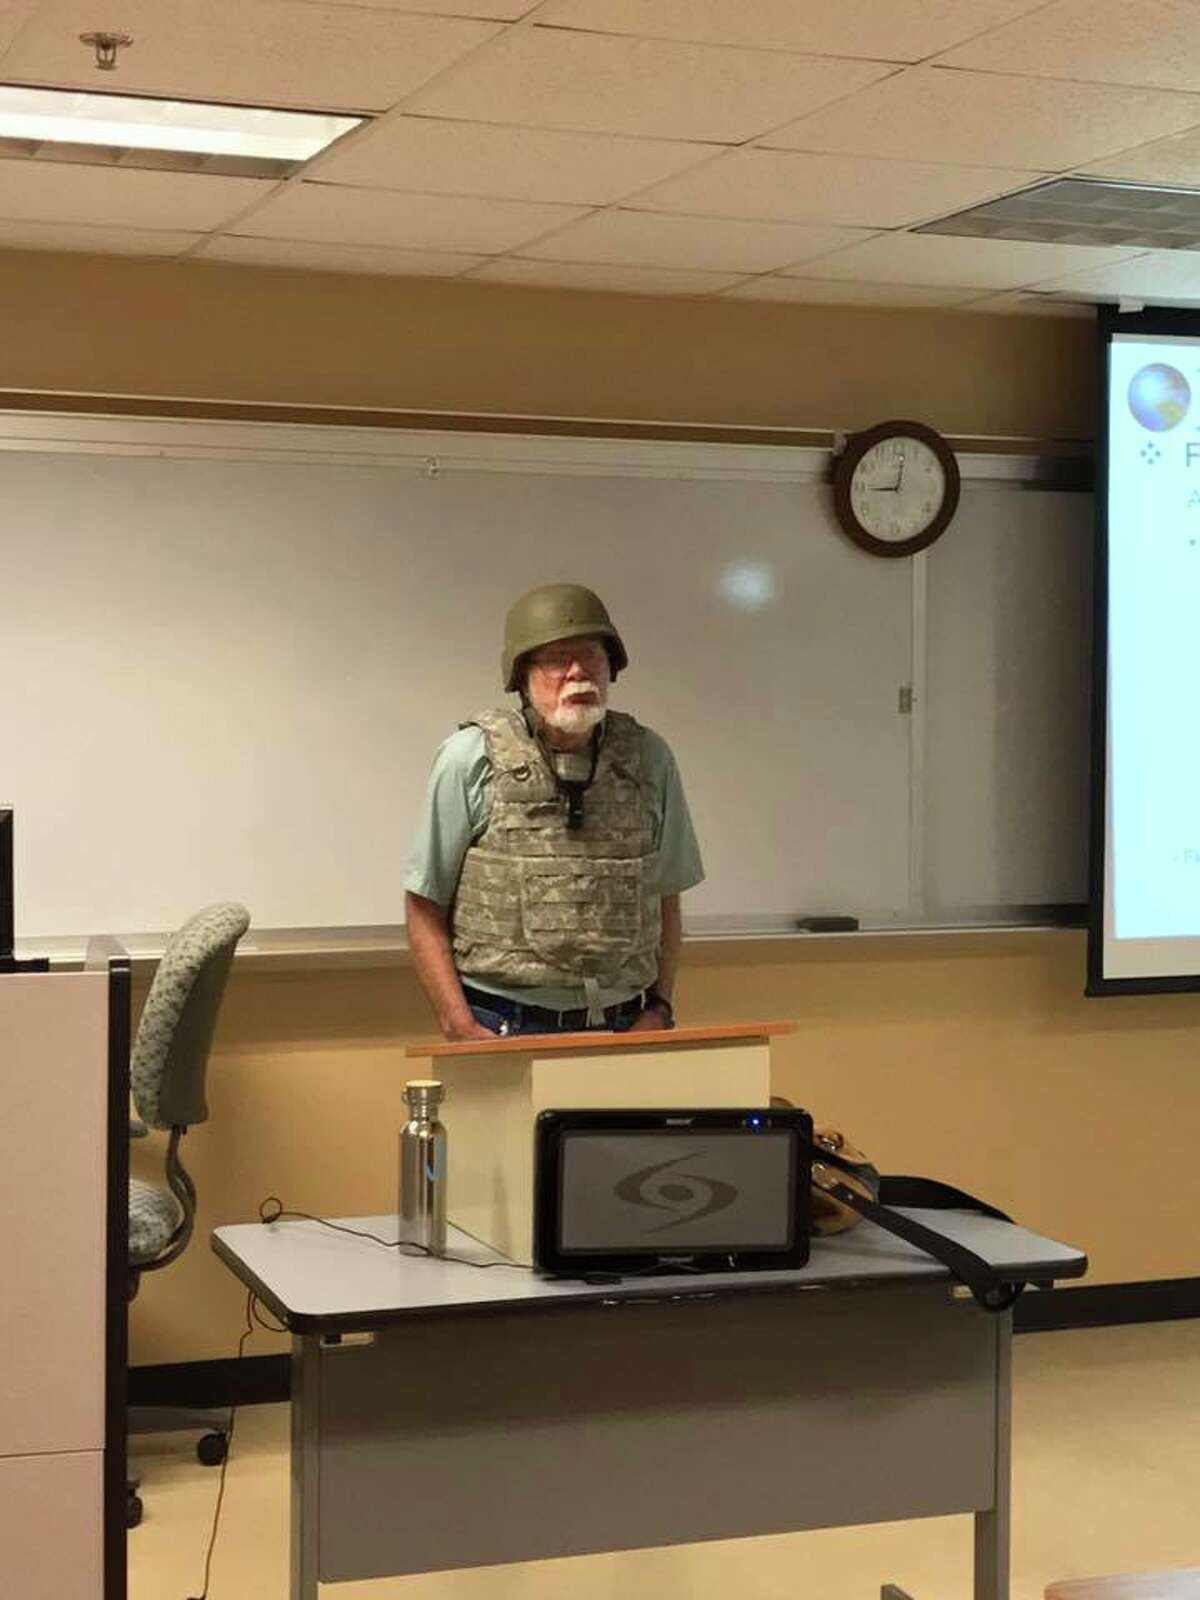 Geography instructor Charles K. Smith of San Antonio College wore protective gear in his class on Tuesday in response to the Campus Carry implementation in Alamo Colleges.